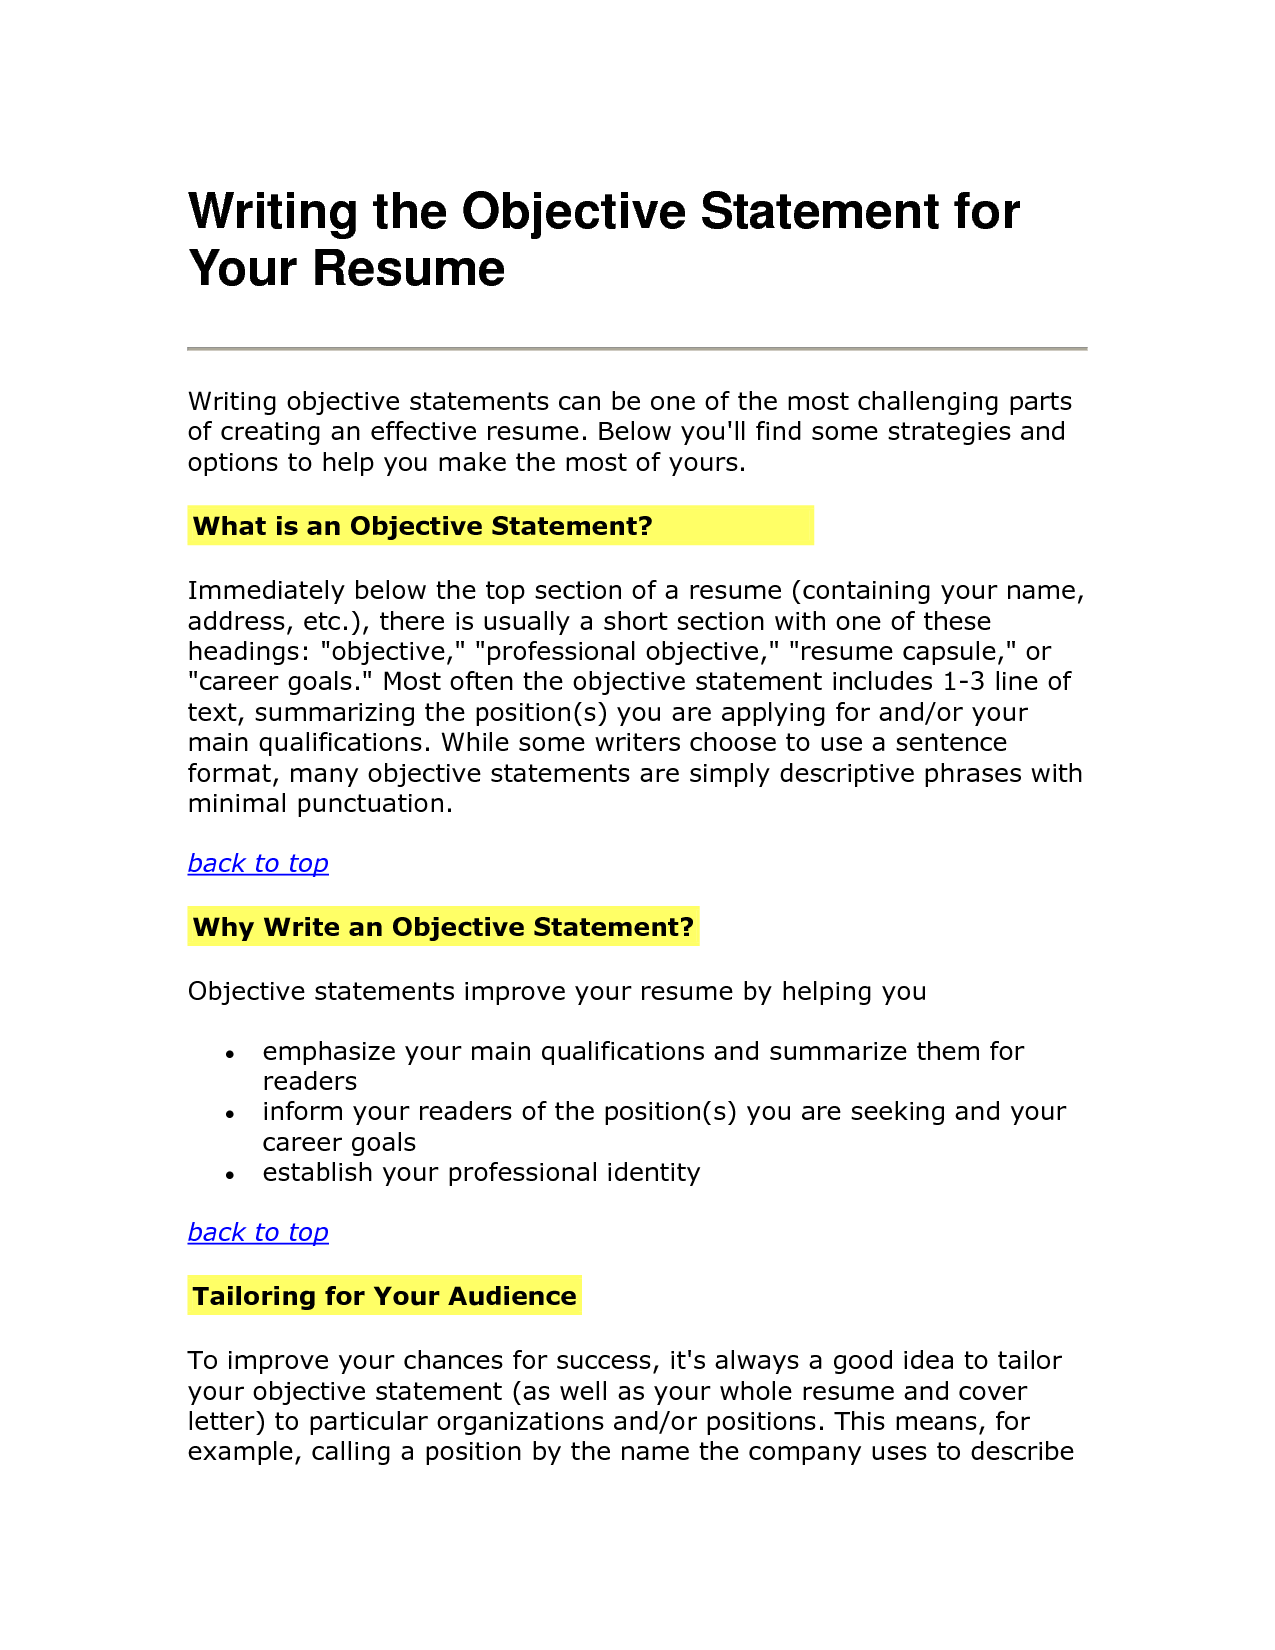 Writing The Objective Statement For Your Resume  Good Objectives For Resume